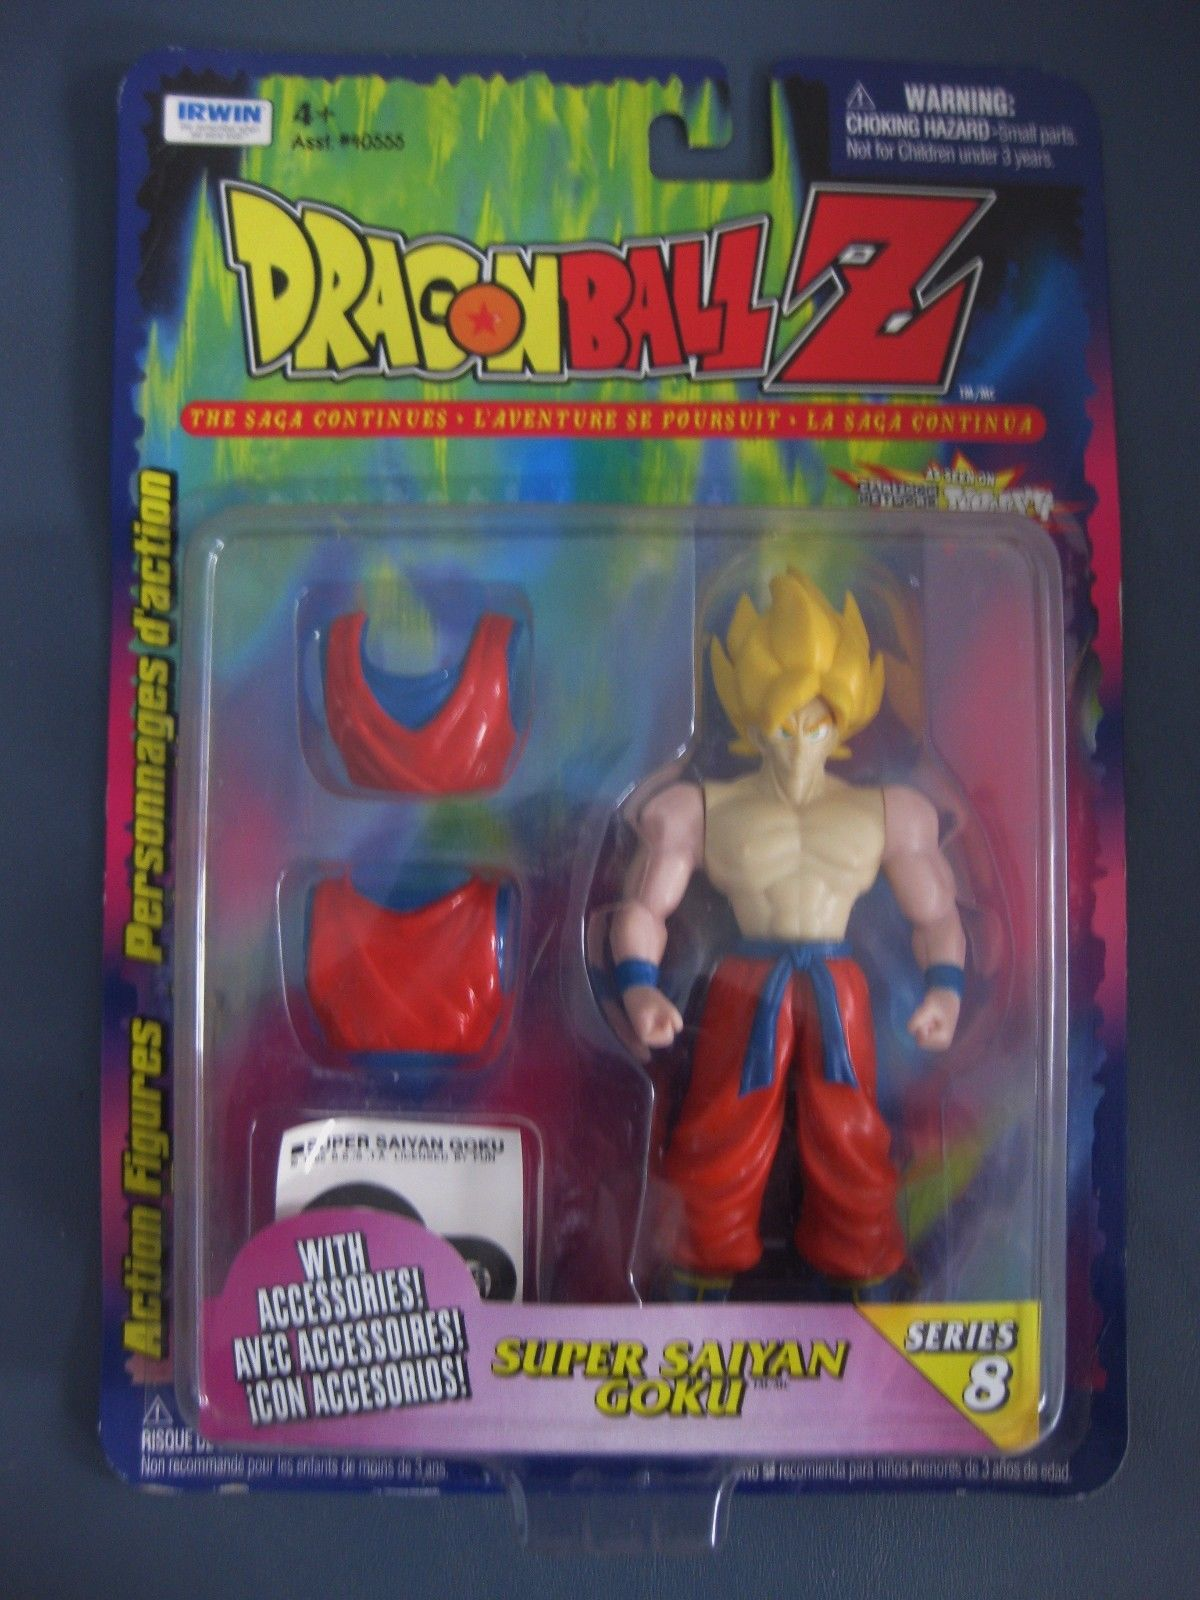 Irwin Dragon Ball Z Series 8 Super Saiyan Goku